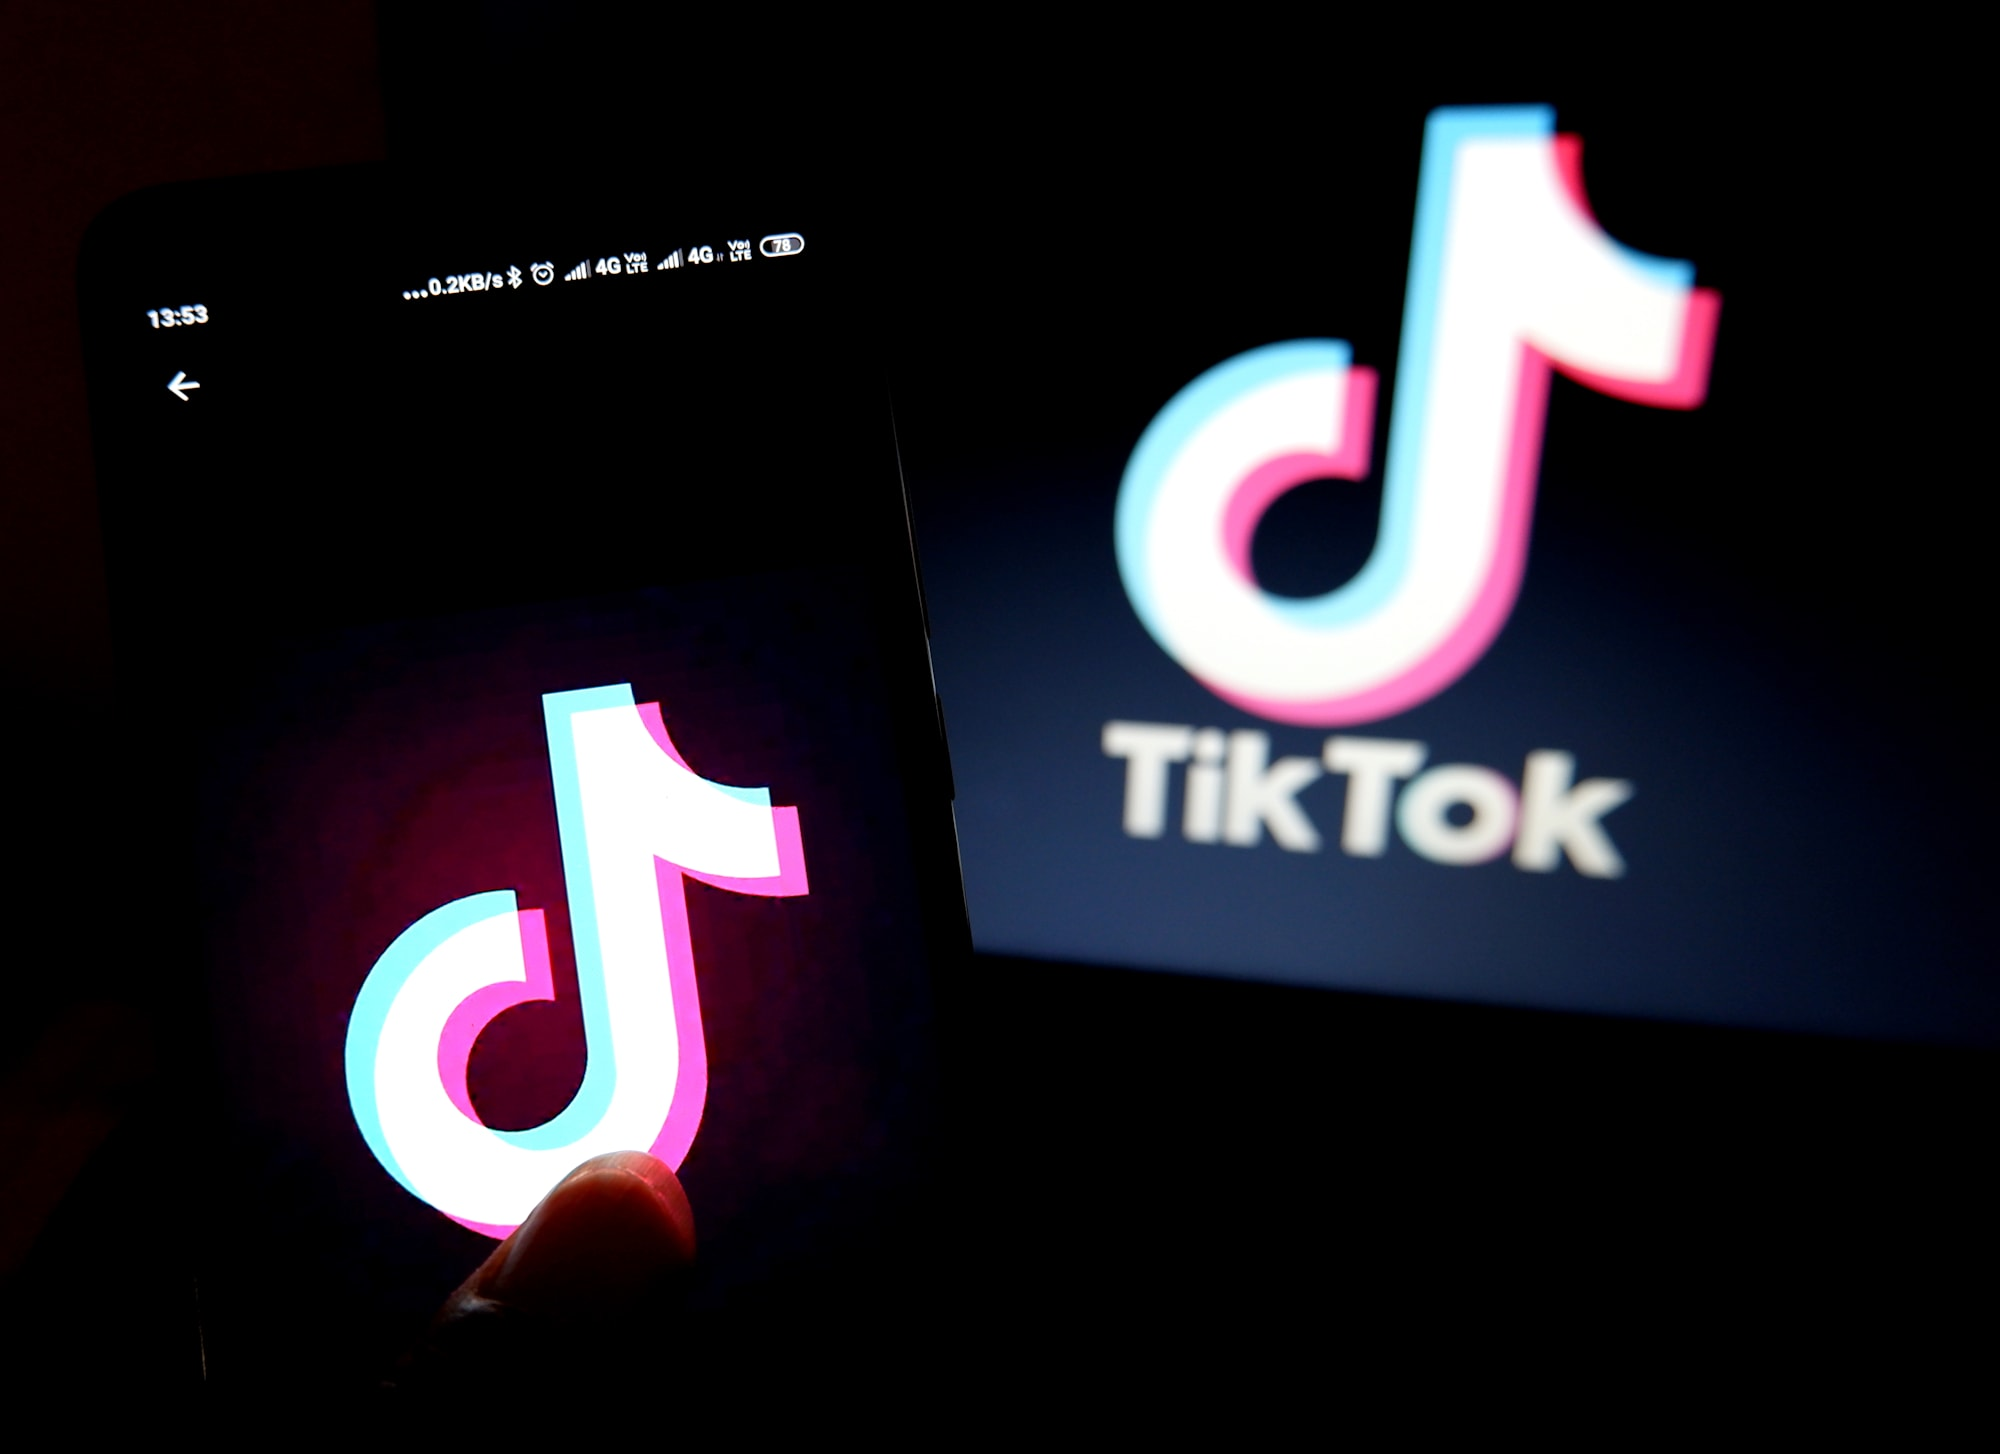 TikTok offers in-app purchasing of sponsored products